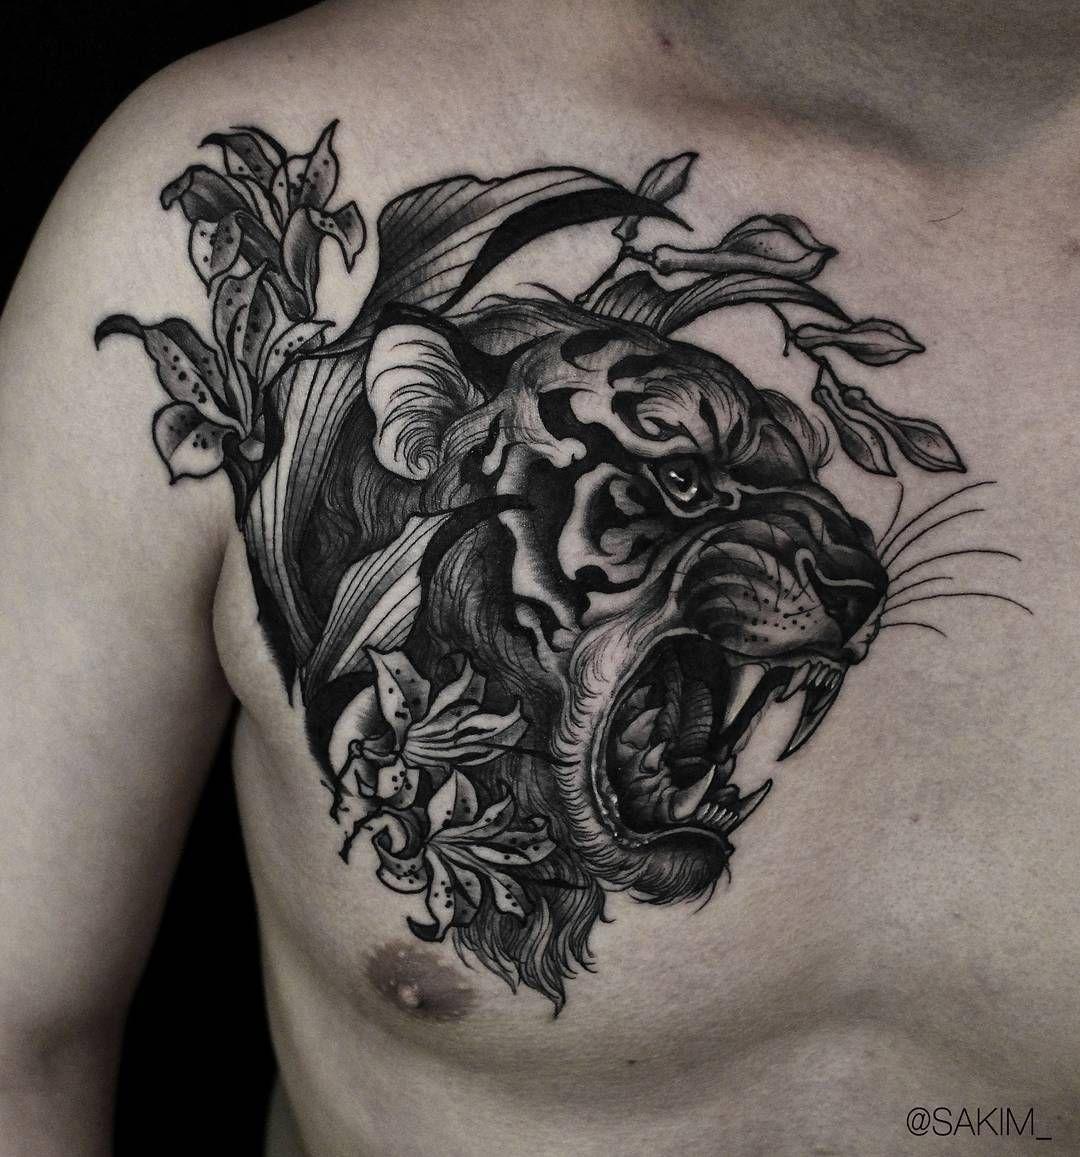 Tiger Face Tattoo Chest: Tiger Tattoos Meaning And Design Ideas